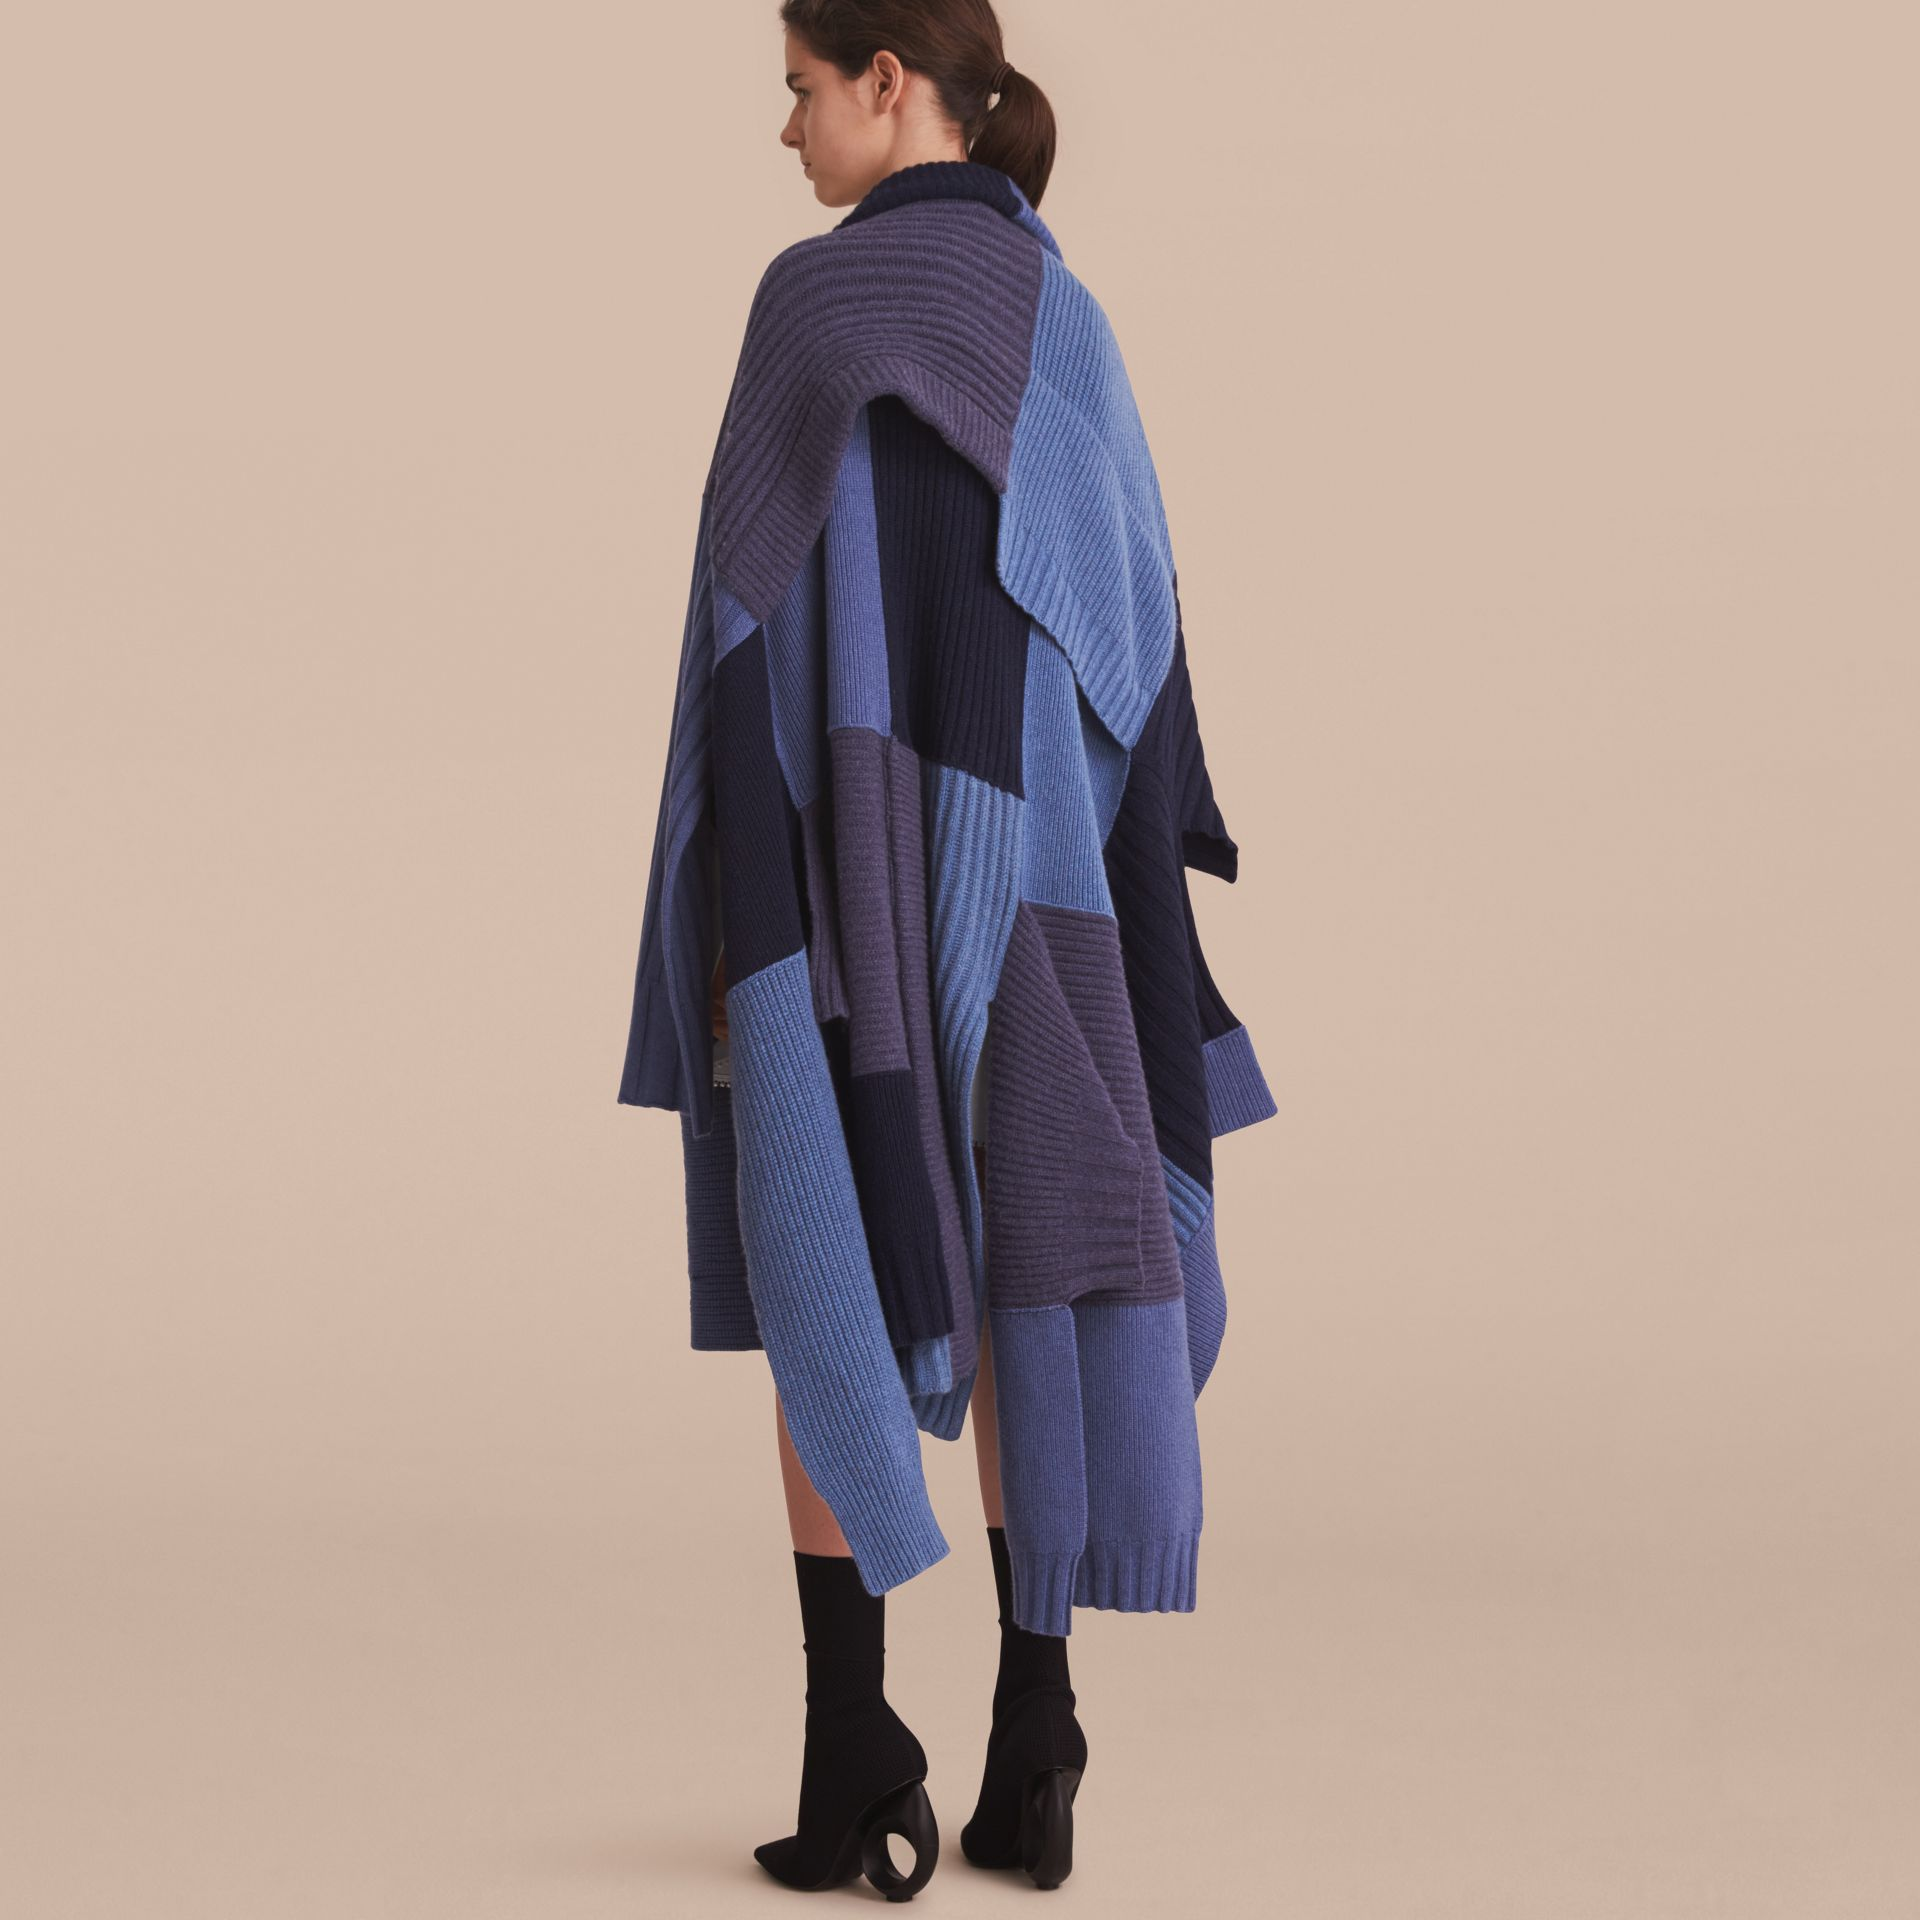 Wool Cashmere Patchwork Poncho in Carbon Blue - Women | Burberry - gallery image 2